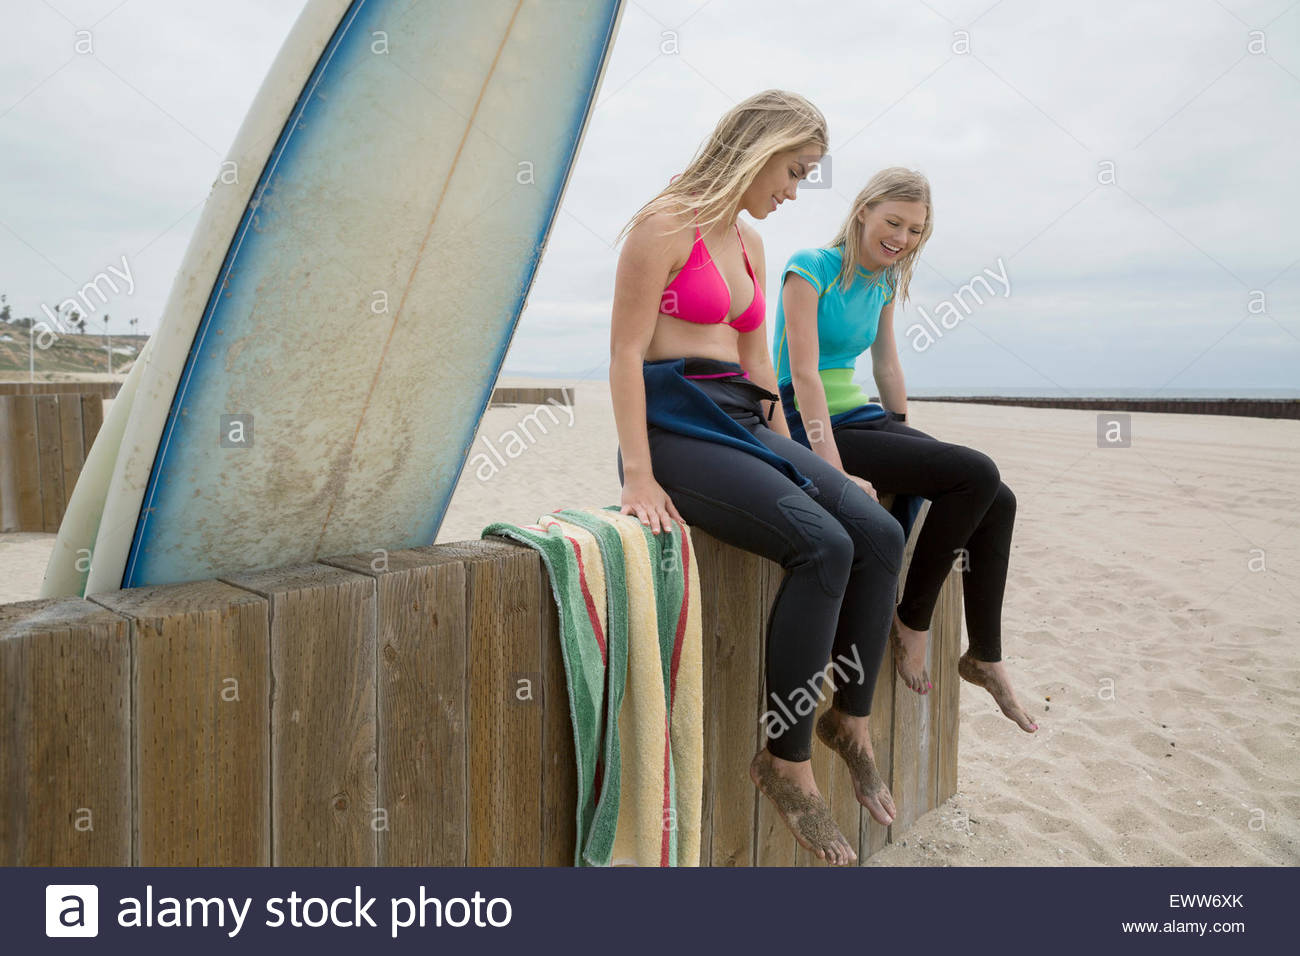 Female surfers taking a break on beach wall - Stock Image